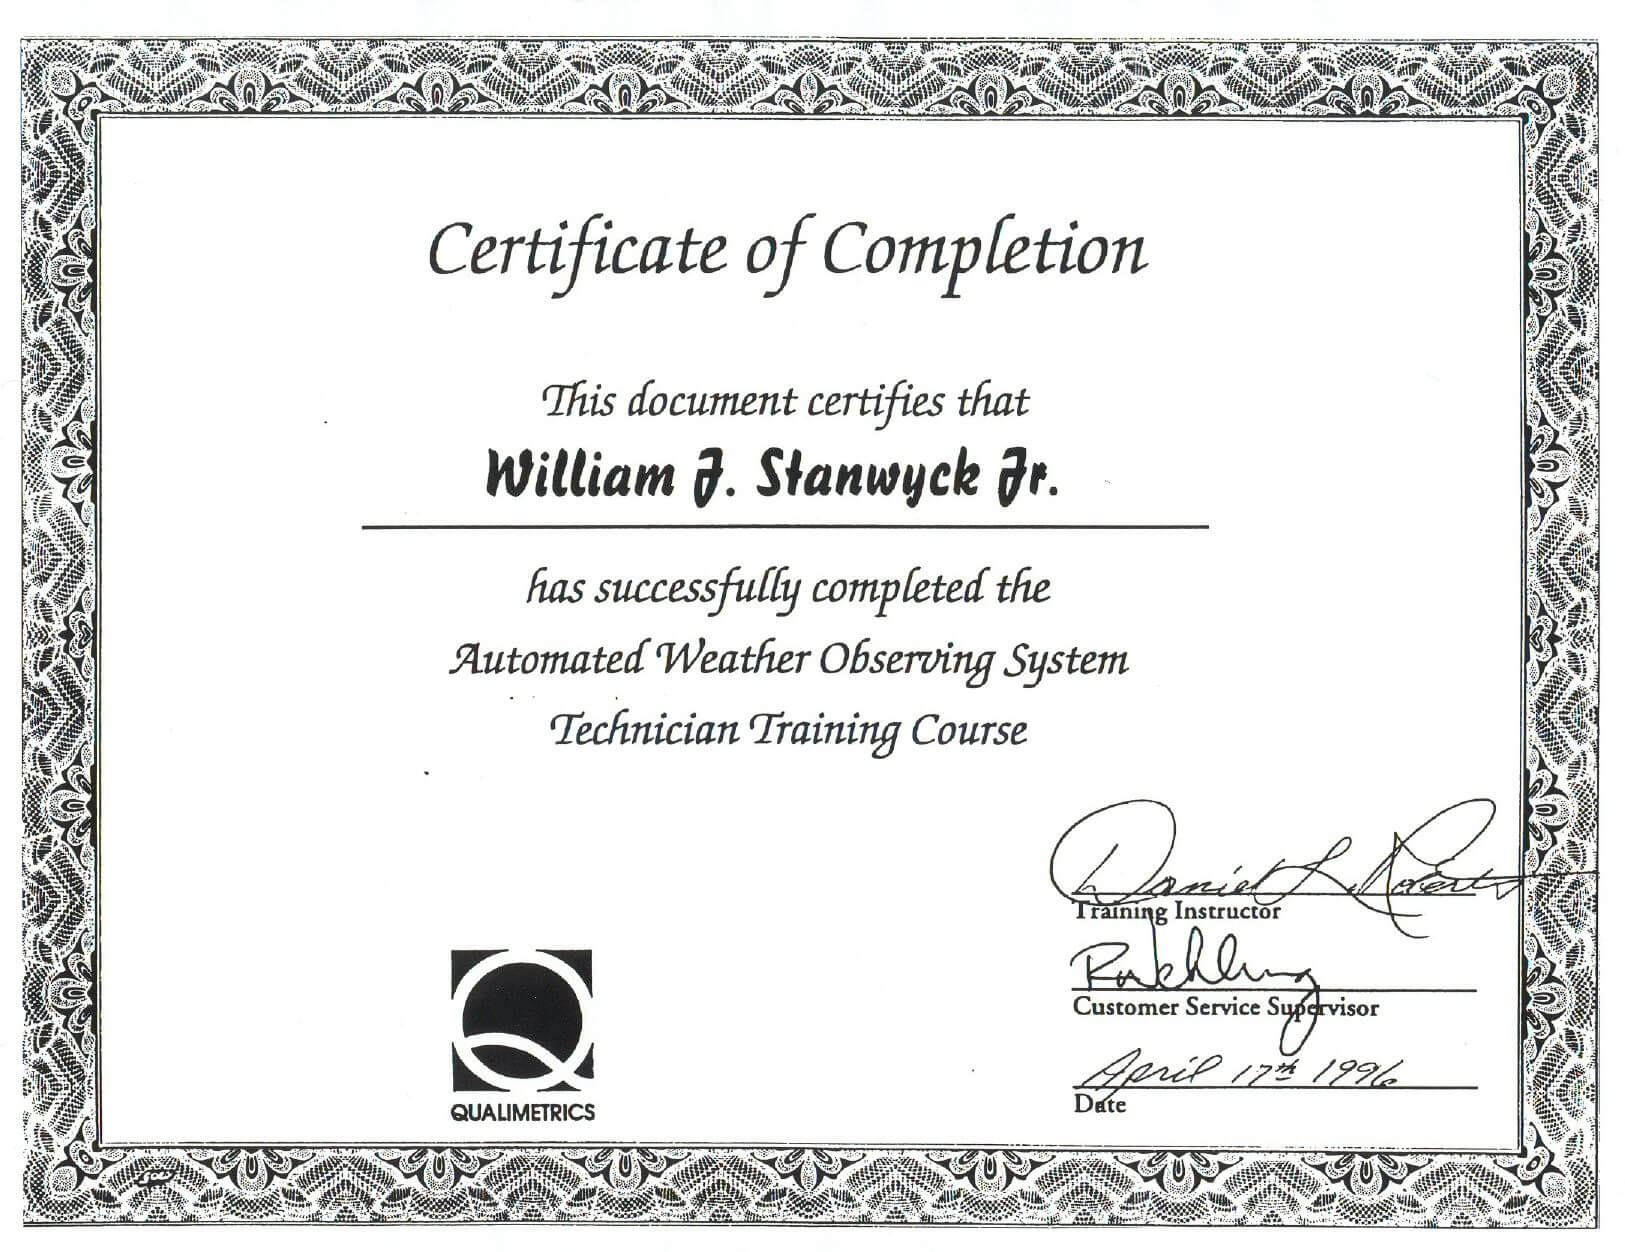 Certificates: A Free Gift Certificate Template Makes Giving within This Entitles The Bearer To Template Certificate